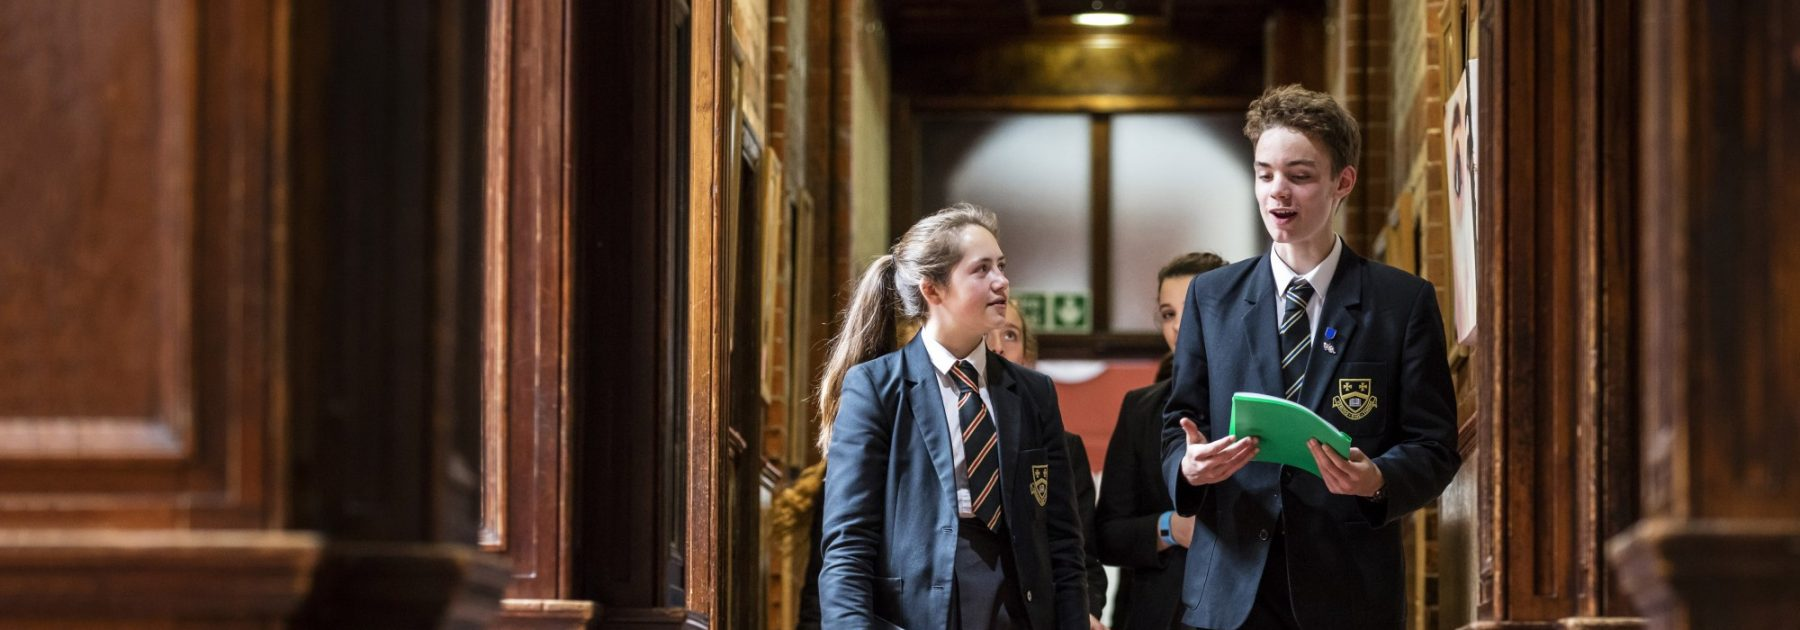 BBC News School Report – News Day approaches!